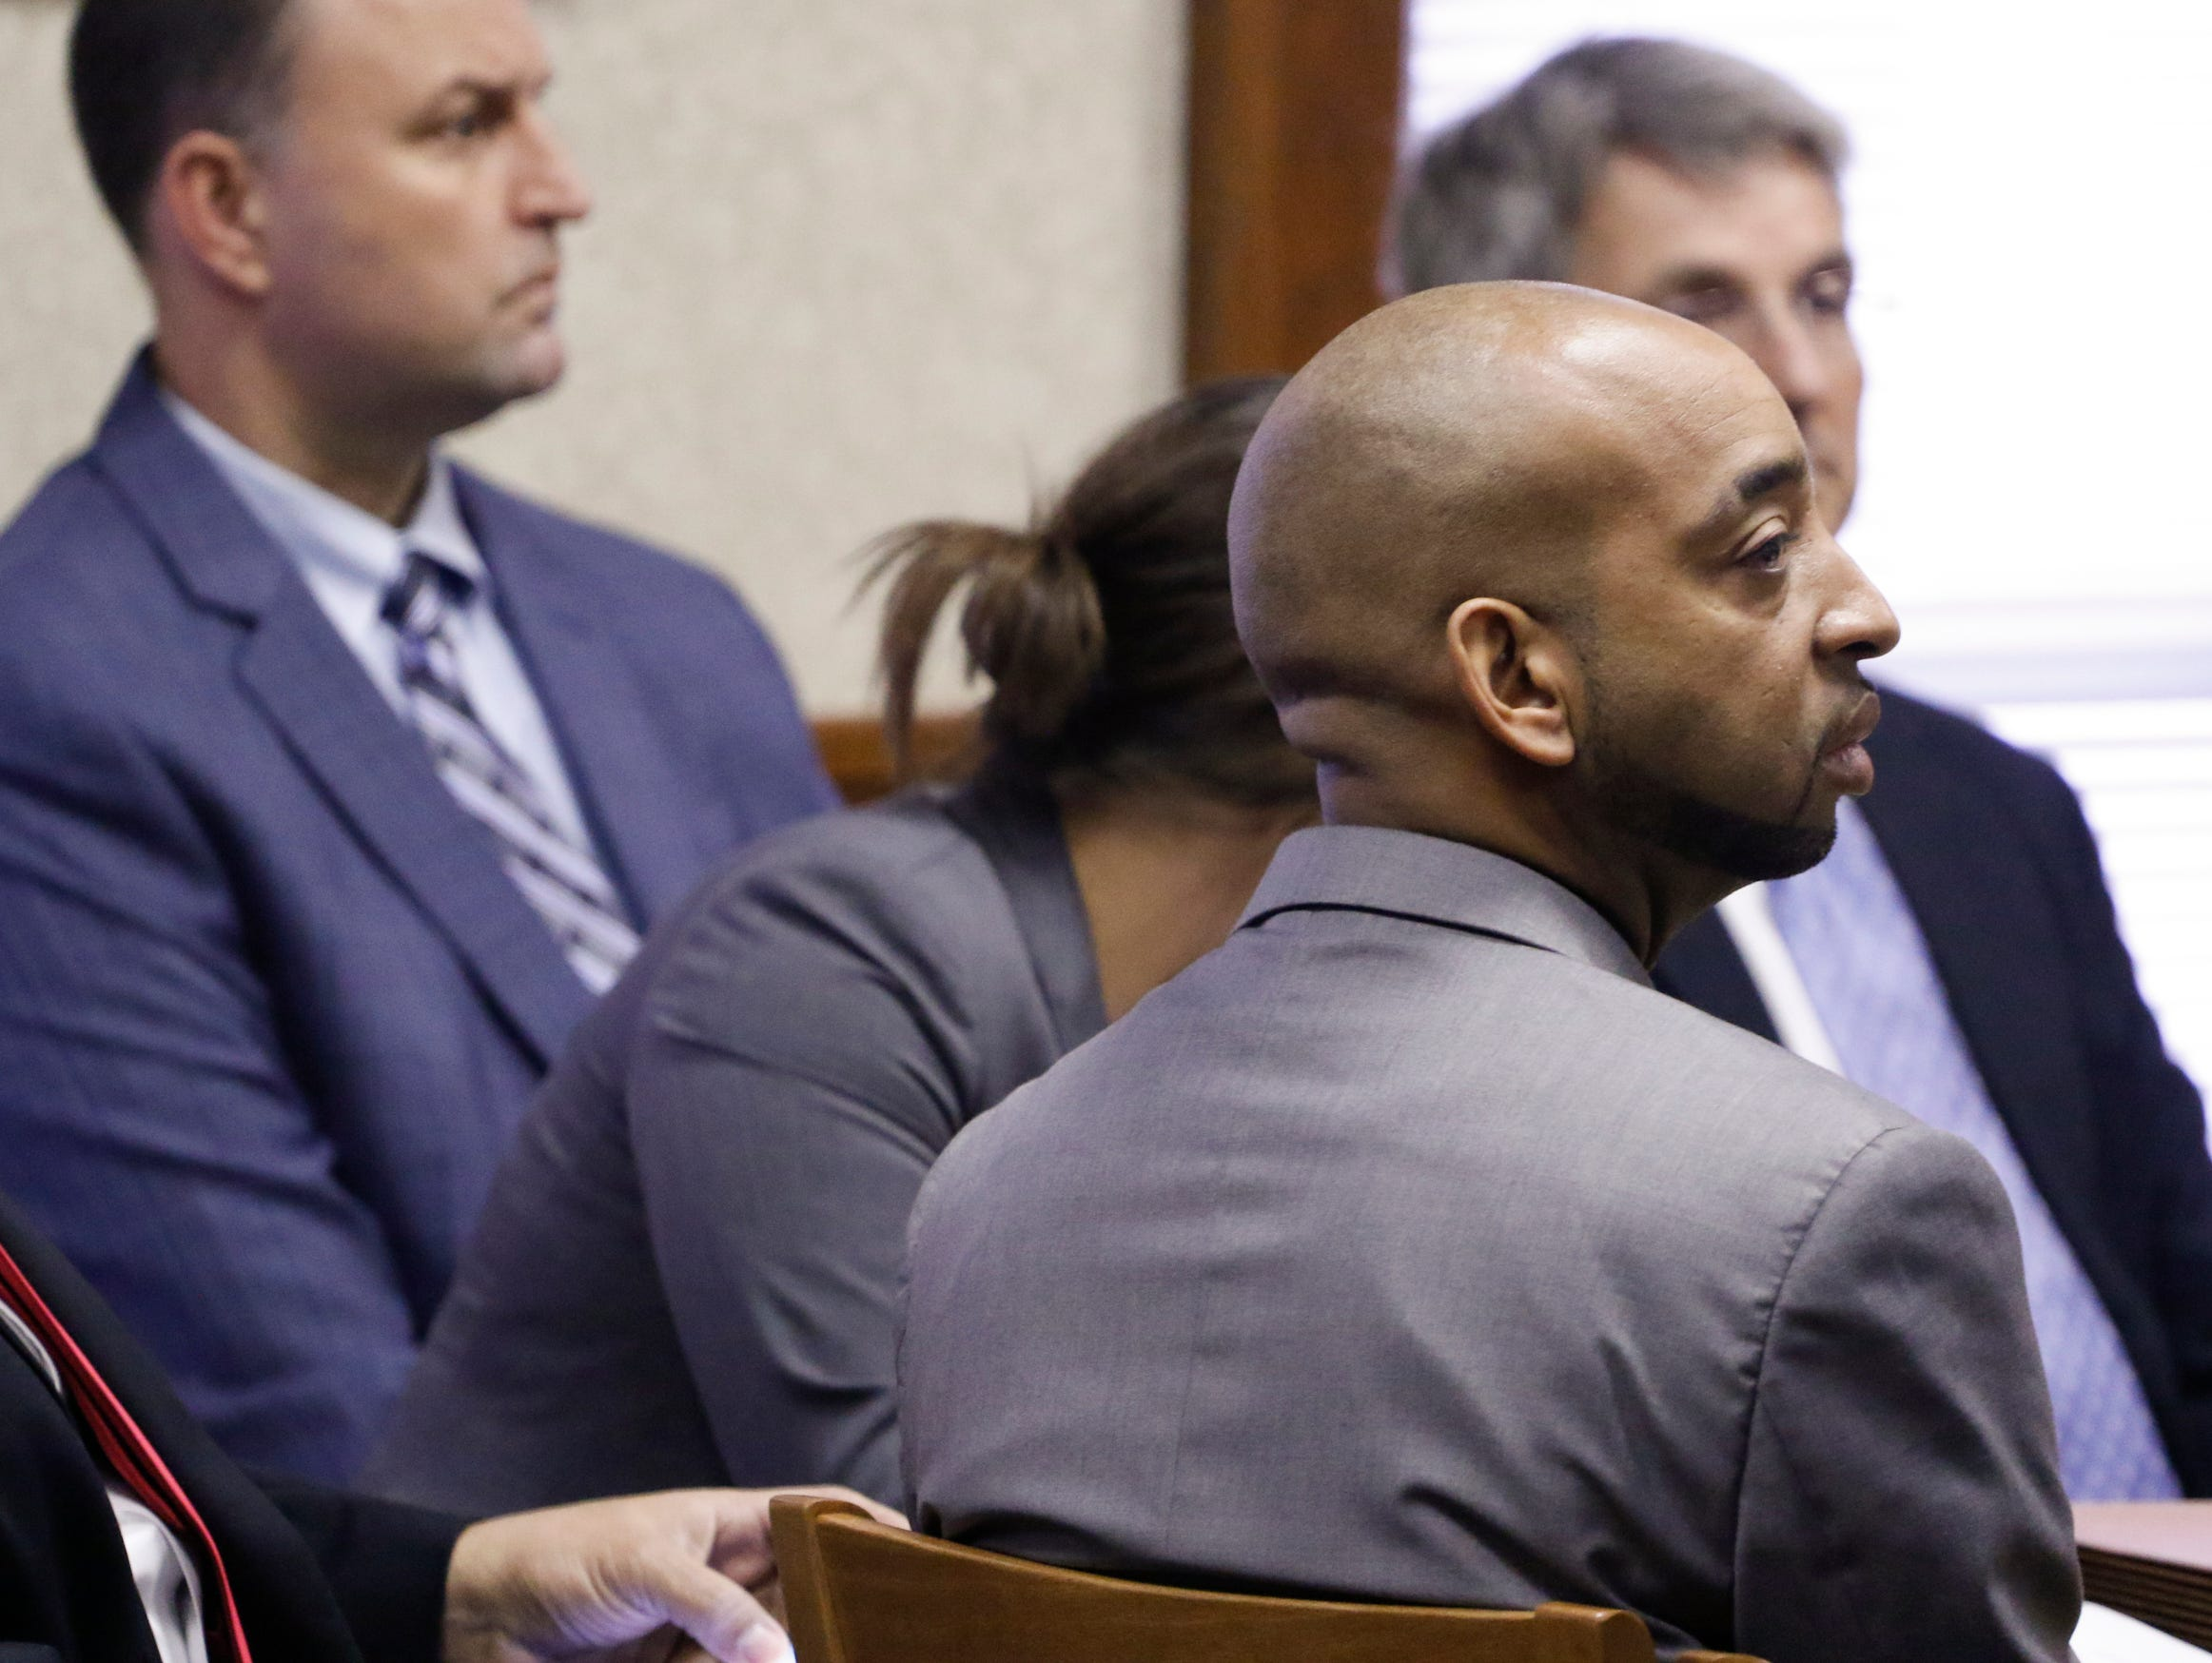 Ooltewah High School basketball head coach Andre Montgomery, front right, appears before Judge Rob Philyaw in Hamilton County Juvenile Court, Thursday, Jan. 21, 2016, in Chattanooga, Tenn. Judge Robert Philyaw denied motions to dismiss charges against Montgomery, and two other high school officials, in facing allegations that they failed to report the sexual abuse of school basketball players by teammates. A preliminary hearing is set for Feb. 15. (Dan Henry/Chattanooga Times Free Press via AP)